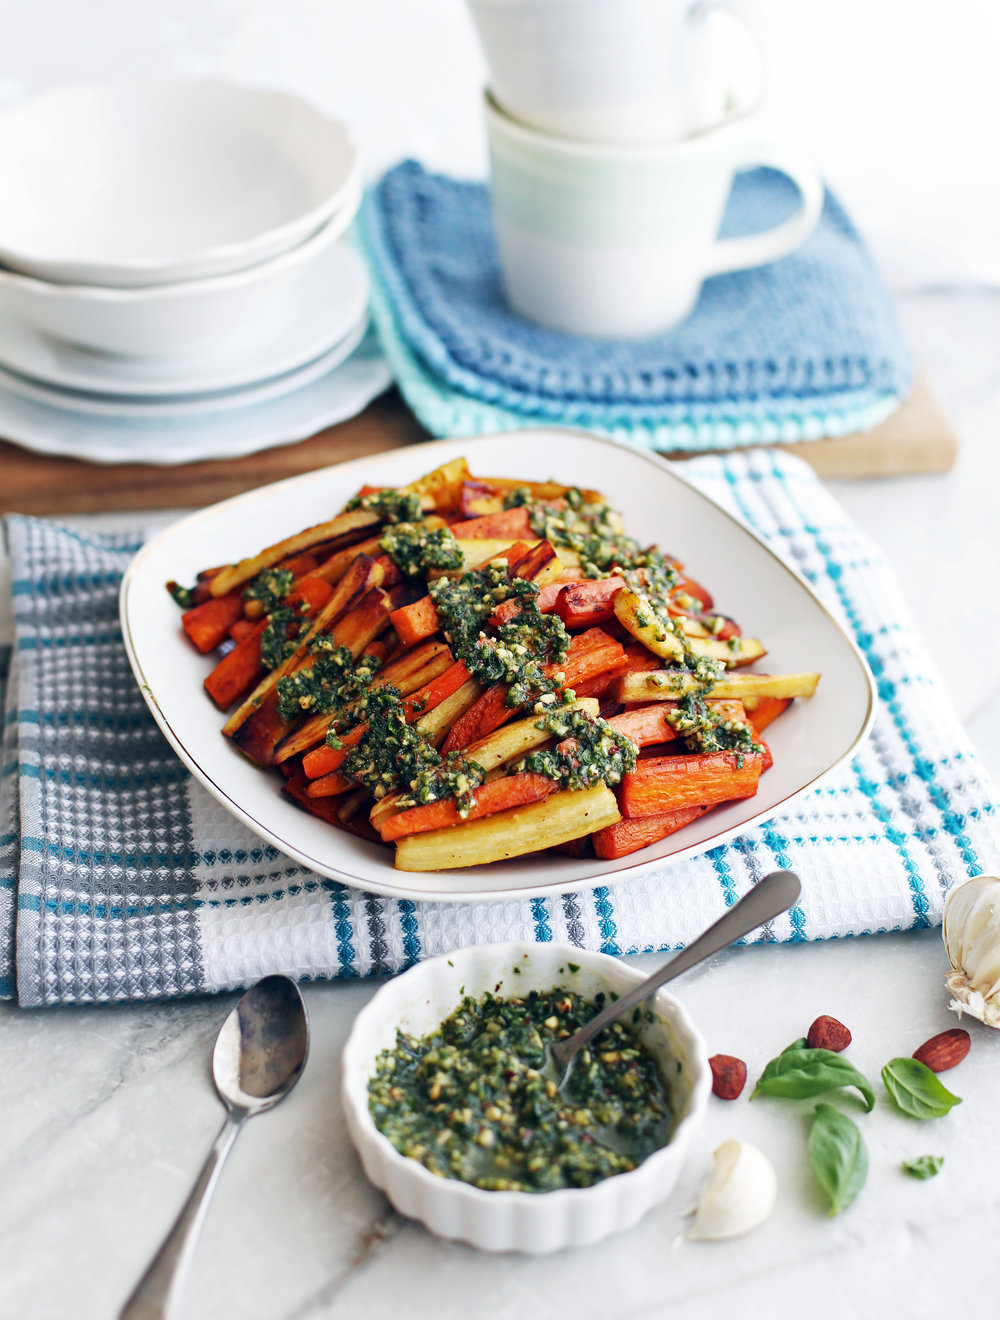 Roasted Balsamic Root Vegetables topped with Basil Almond Pesto on a white plate; more pesto in a small bowl on the side.